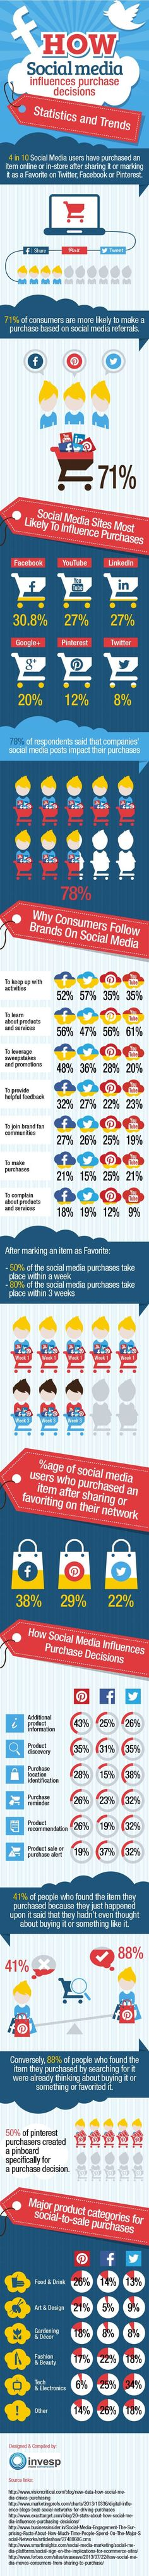 How #socialmedia influences purchase decisions. #digitalmarketing #onlinemarketing